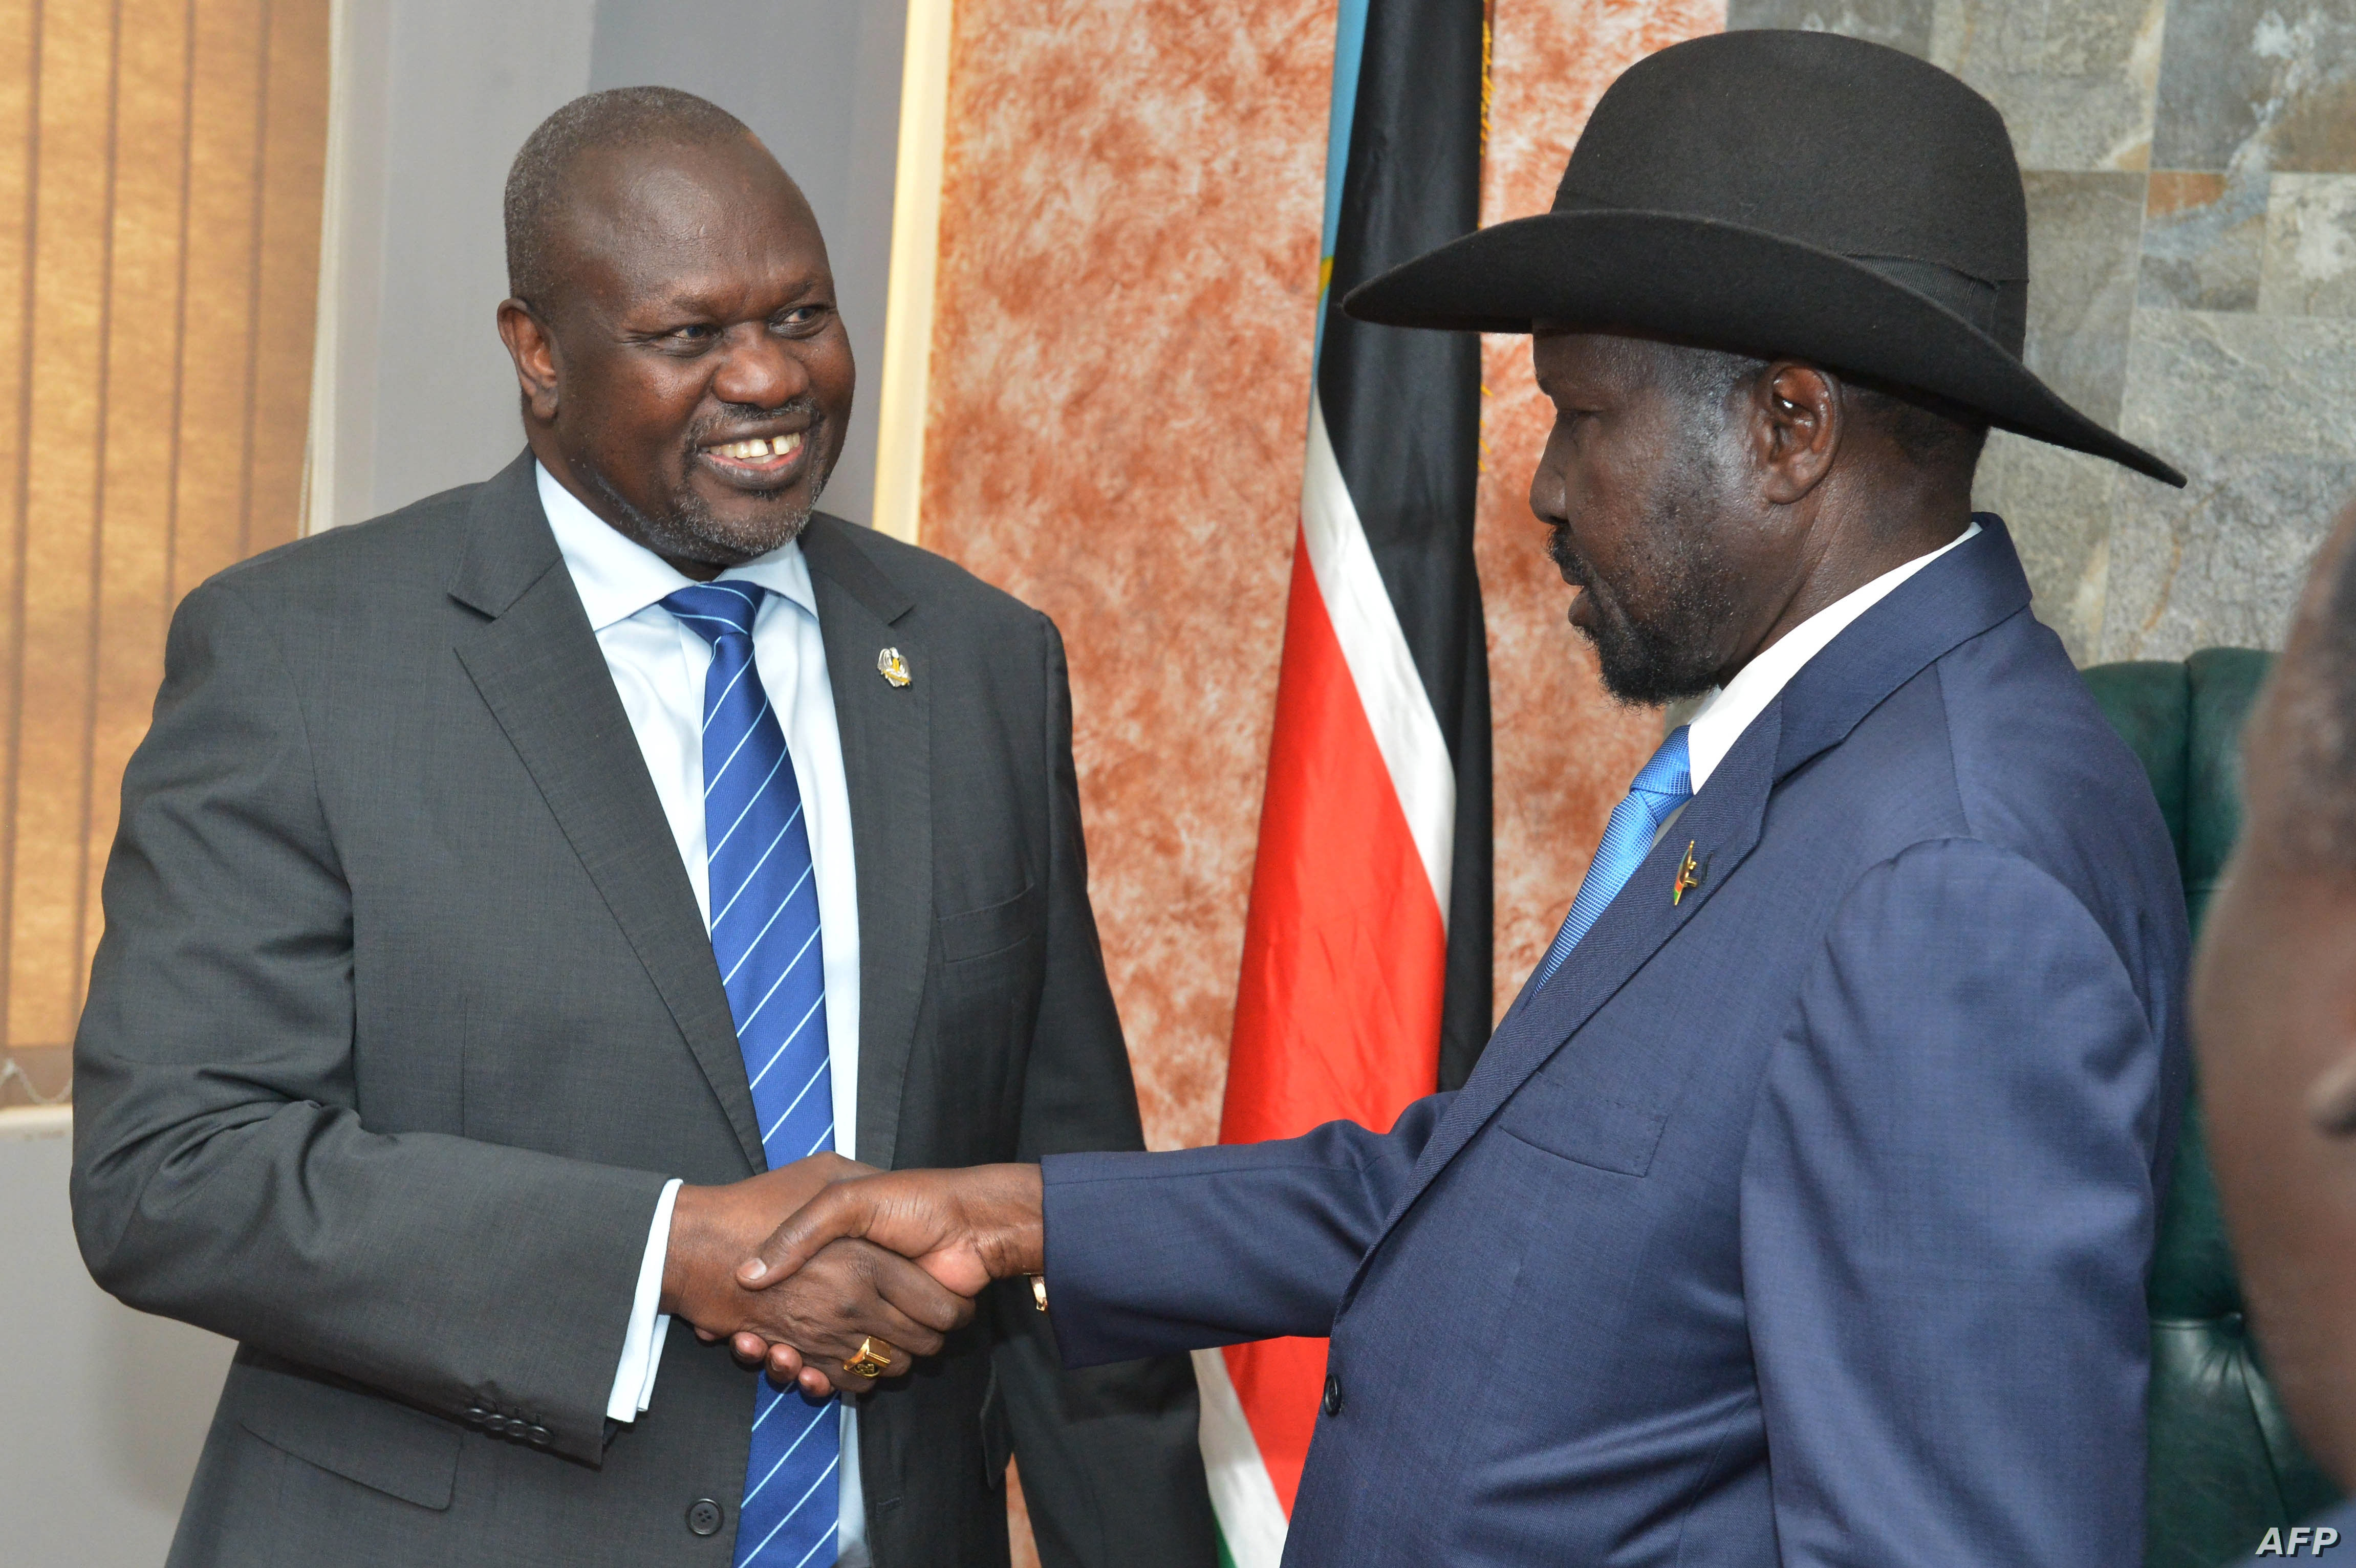 South Sudan's President Salva Kiir (R) shakes hands with opposition leader Riek Machar before their meeting in Juba, South Sudan, Sept. 11, 2019. Photo credit VOA